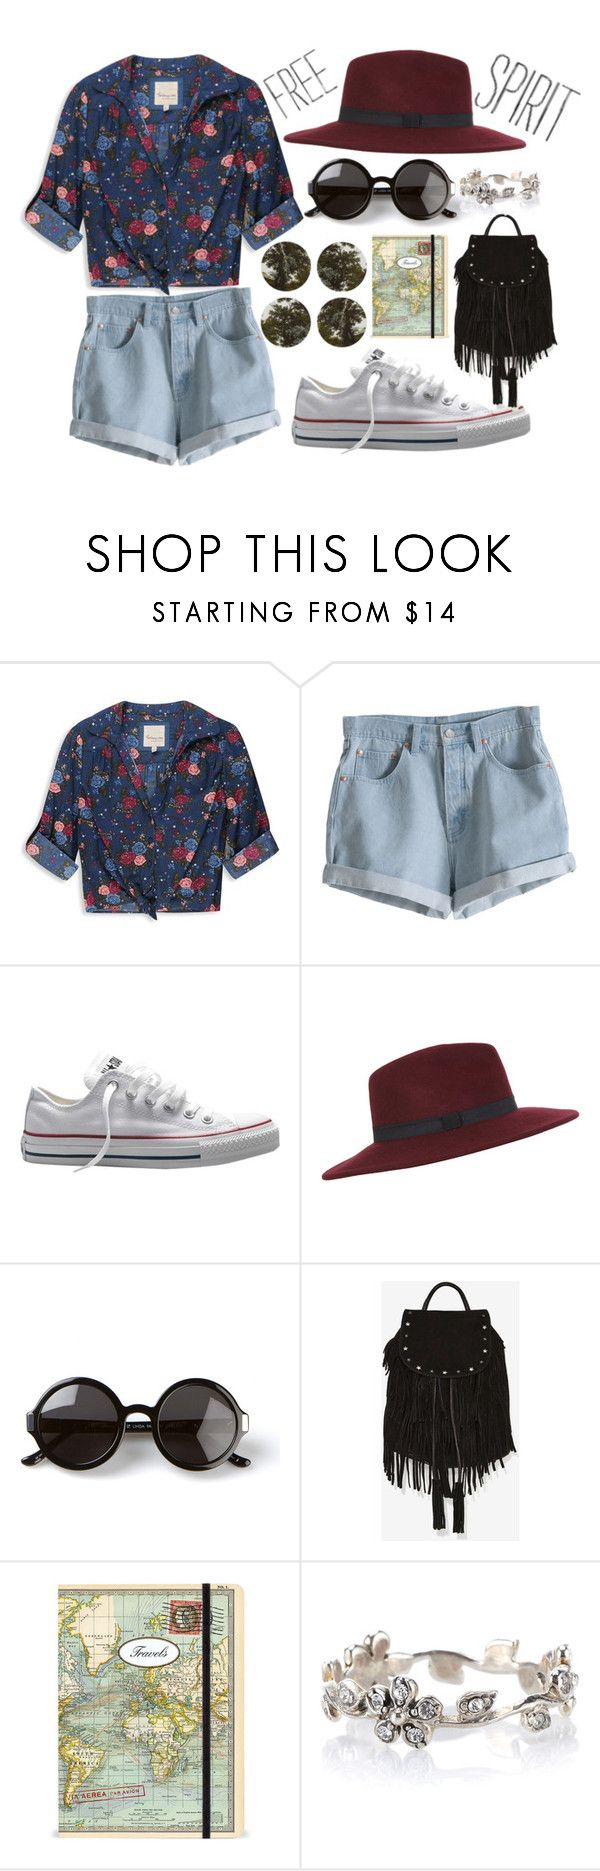 Free Spirit by jessamy48 on Polyvore featuring moda, Forever 21, MTWTFSS Weekday, Converse, Maison Scotch, Accessorize, Miss Selfridge, The Row, Boho & Co and Cavallini & Co.